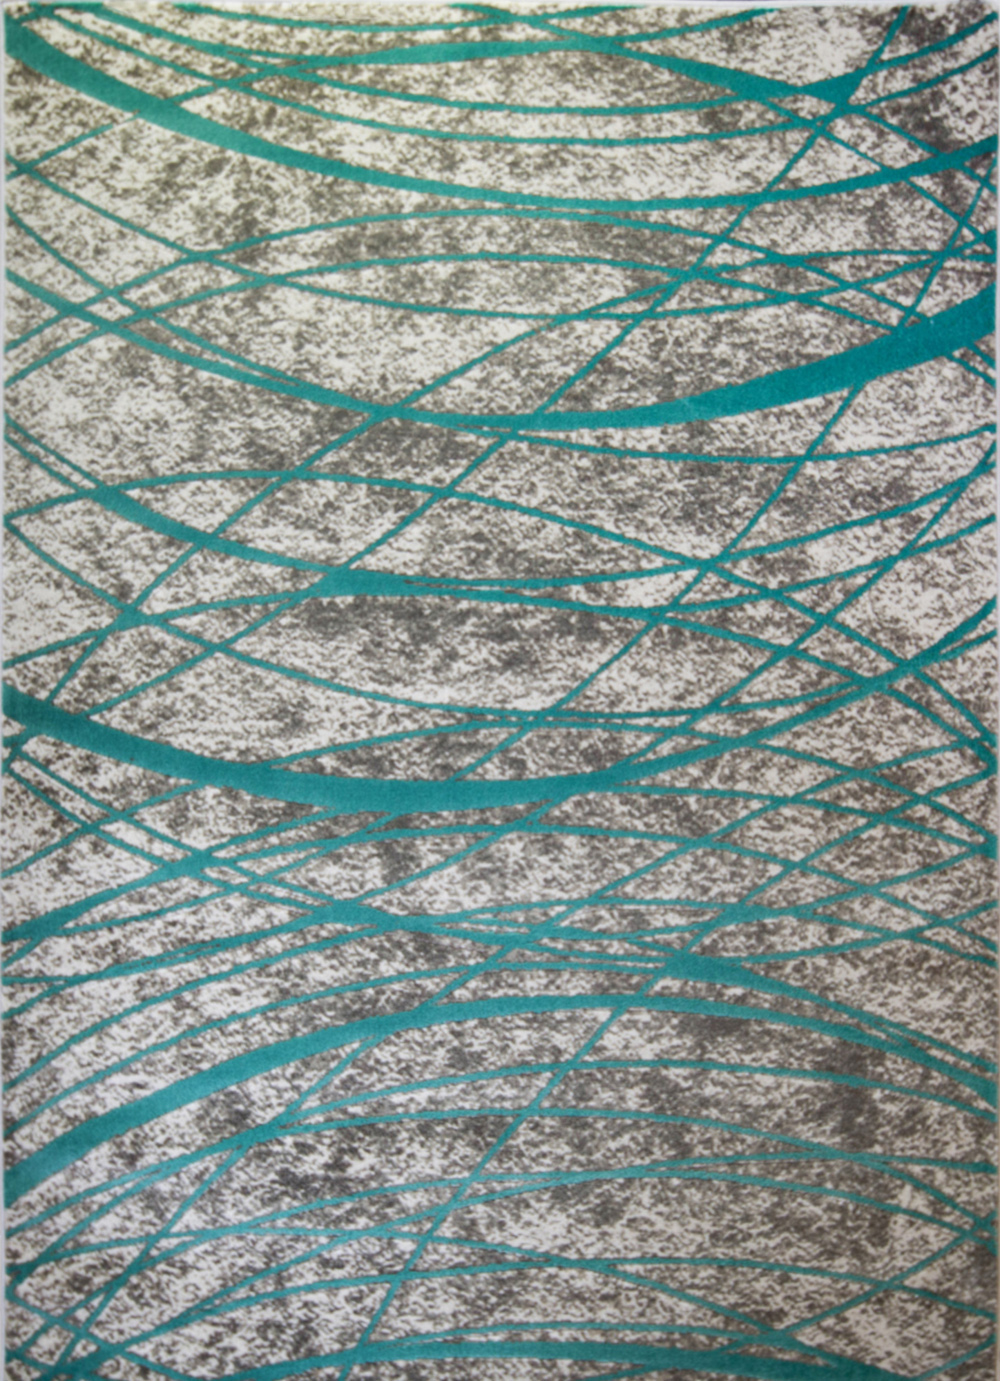 Rugs Ivory Blue Teal Abstract Area Rug Modern Lines Swirls